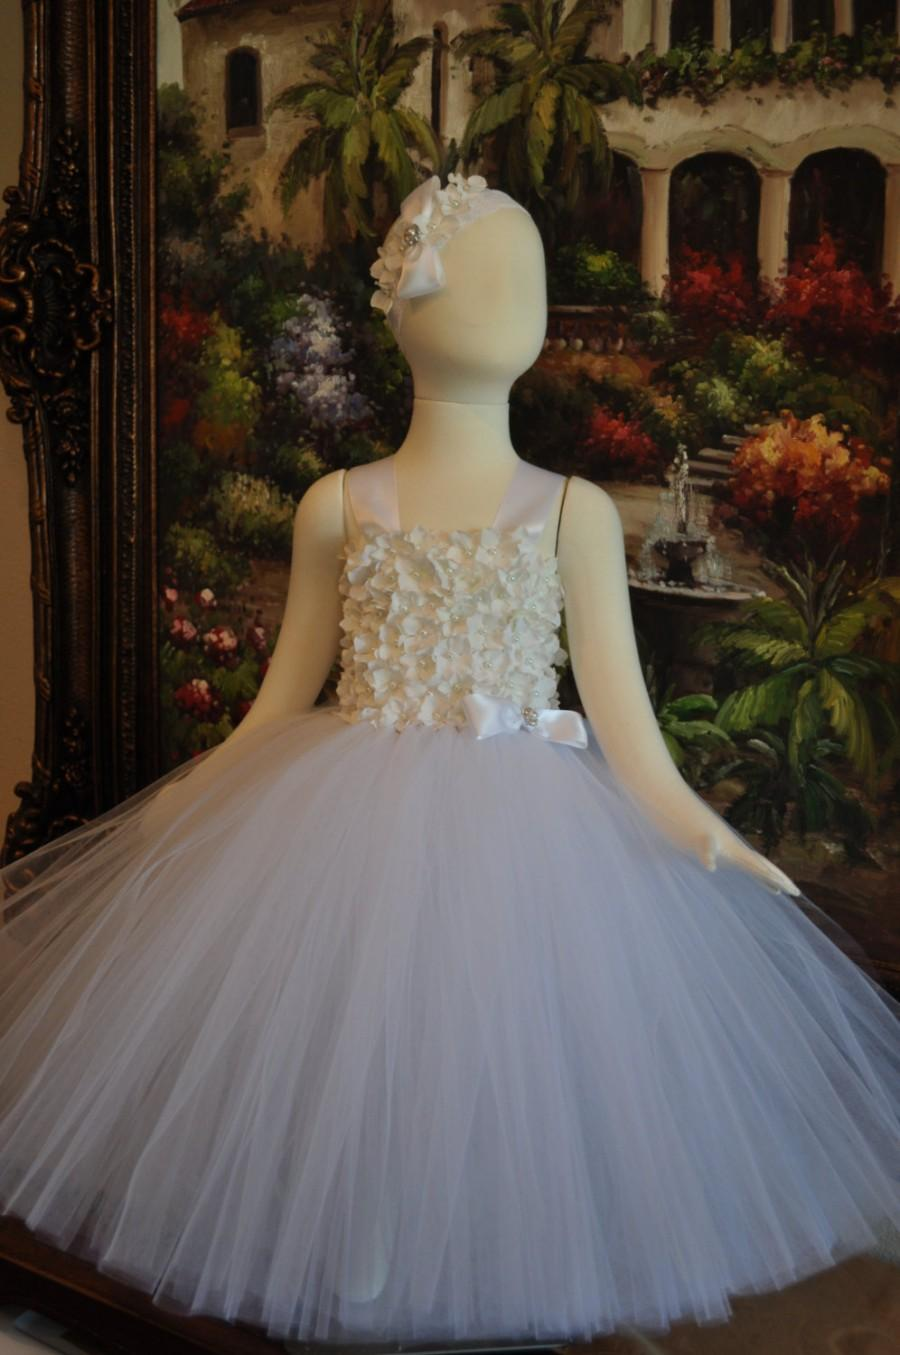 Christening Dress Special Occasion Dress Flower Girl Dressgirls